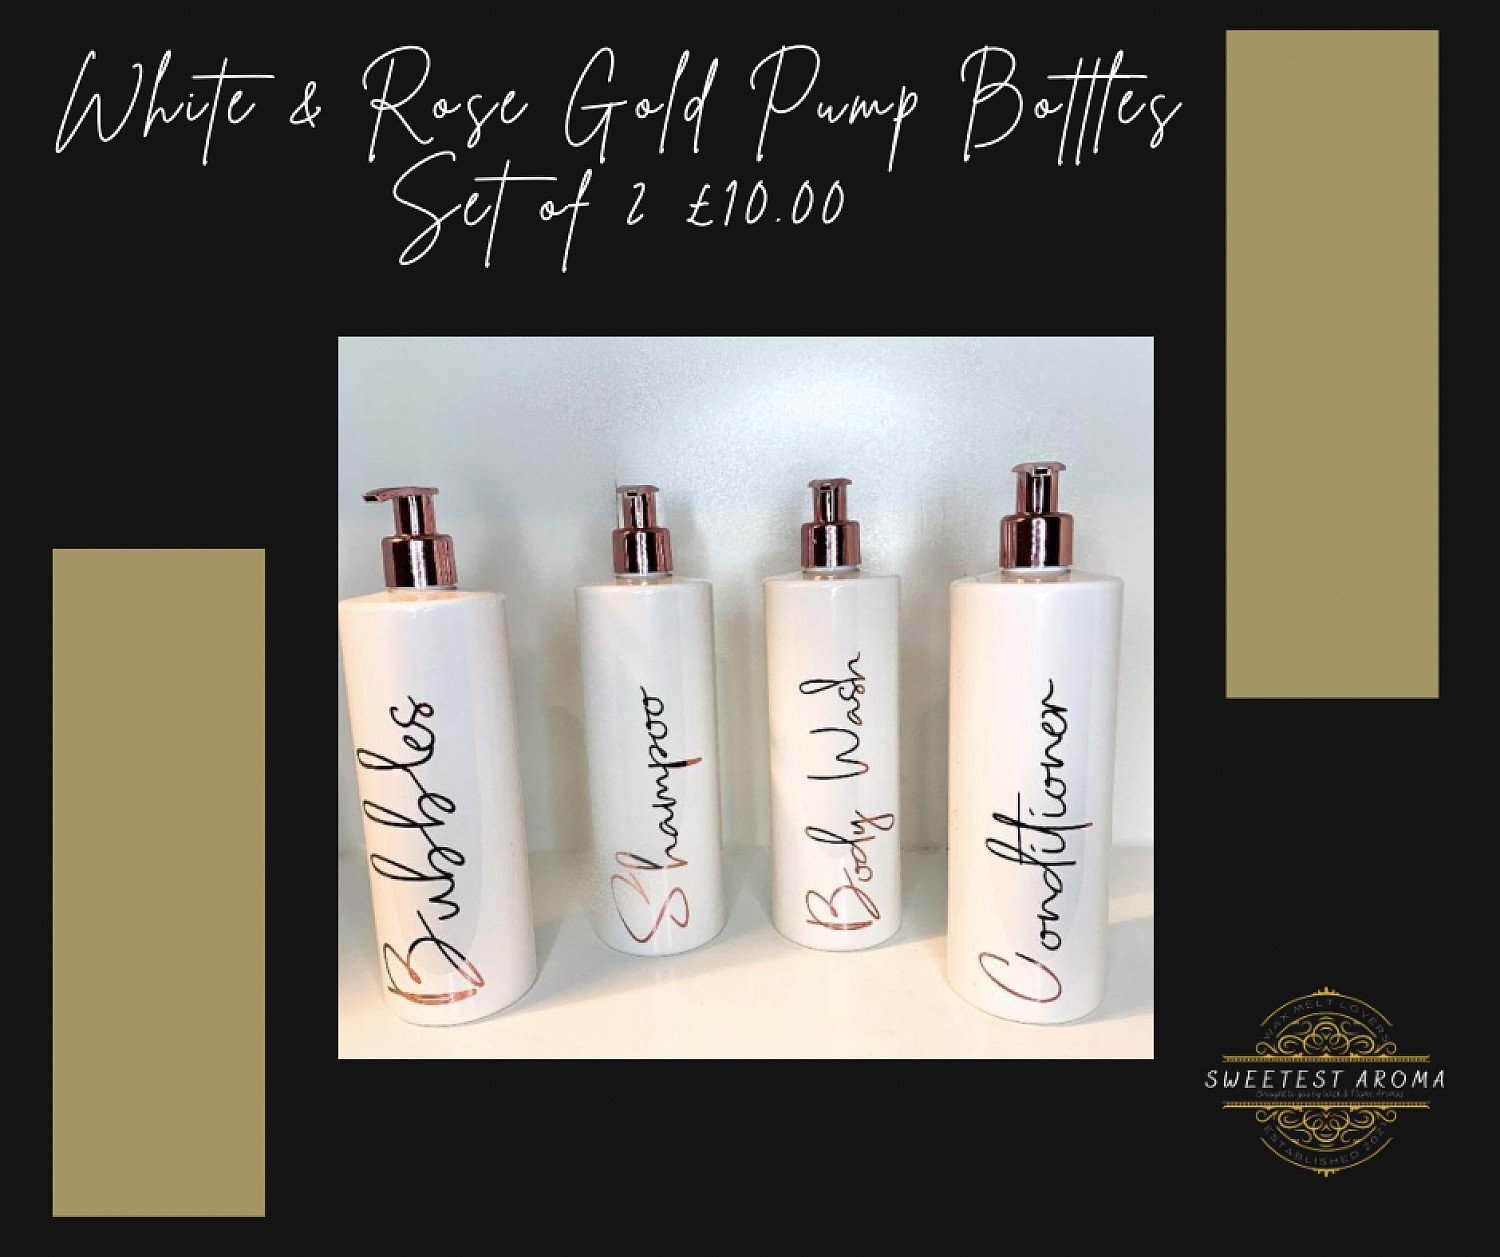 White & Rose Gold Pump Bottles - Set of 2